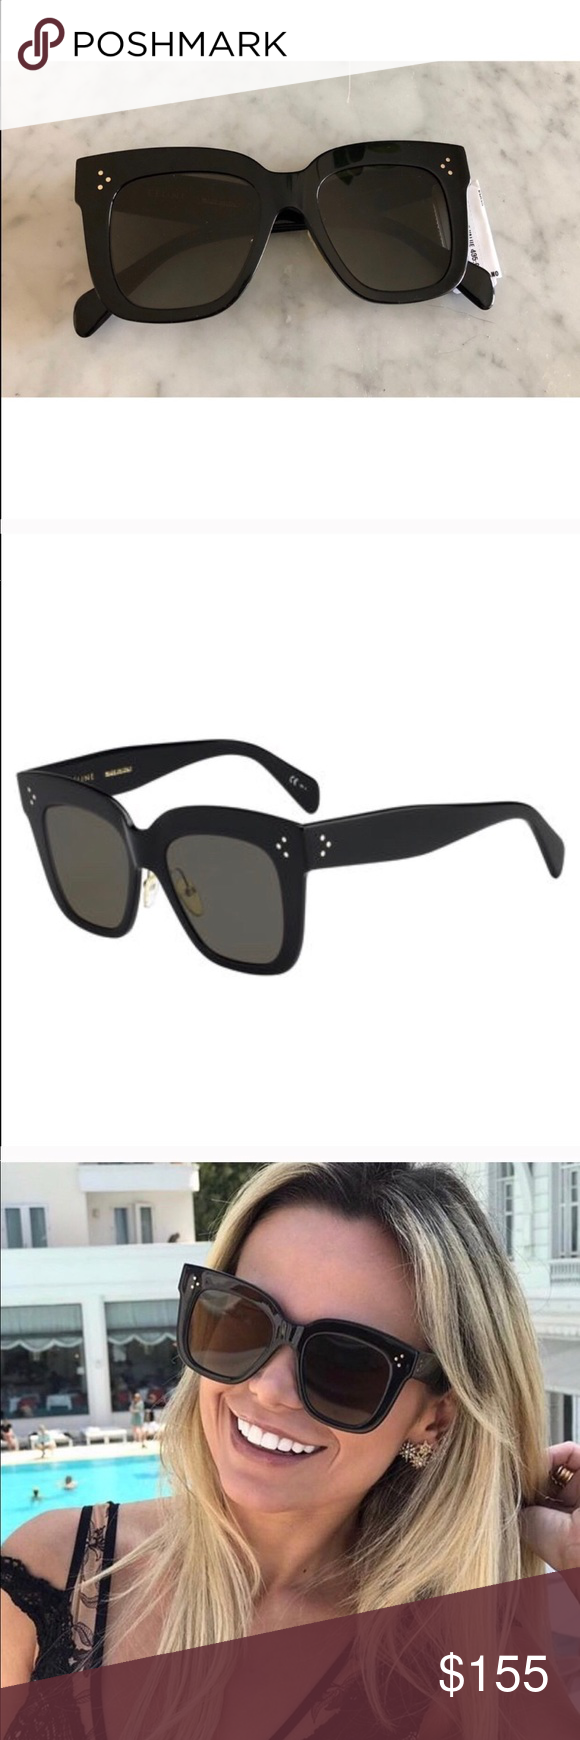 029ee263af8 authentic black Céline Kim 41444 s sunglasses New with tags Celine  sunglasses! CL41444 Kim sunglasses. No scratches. Does not come with box  but will ship ...